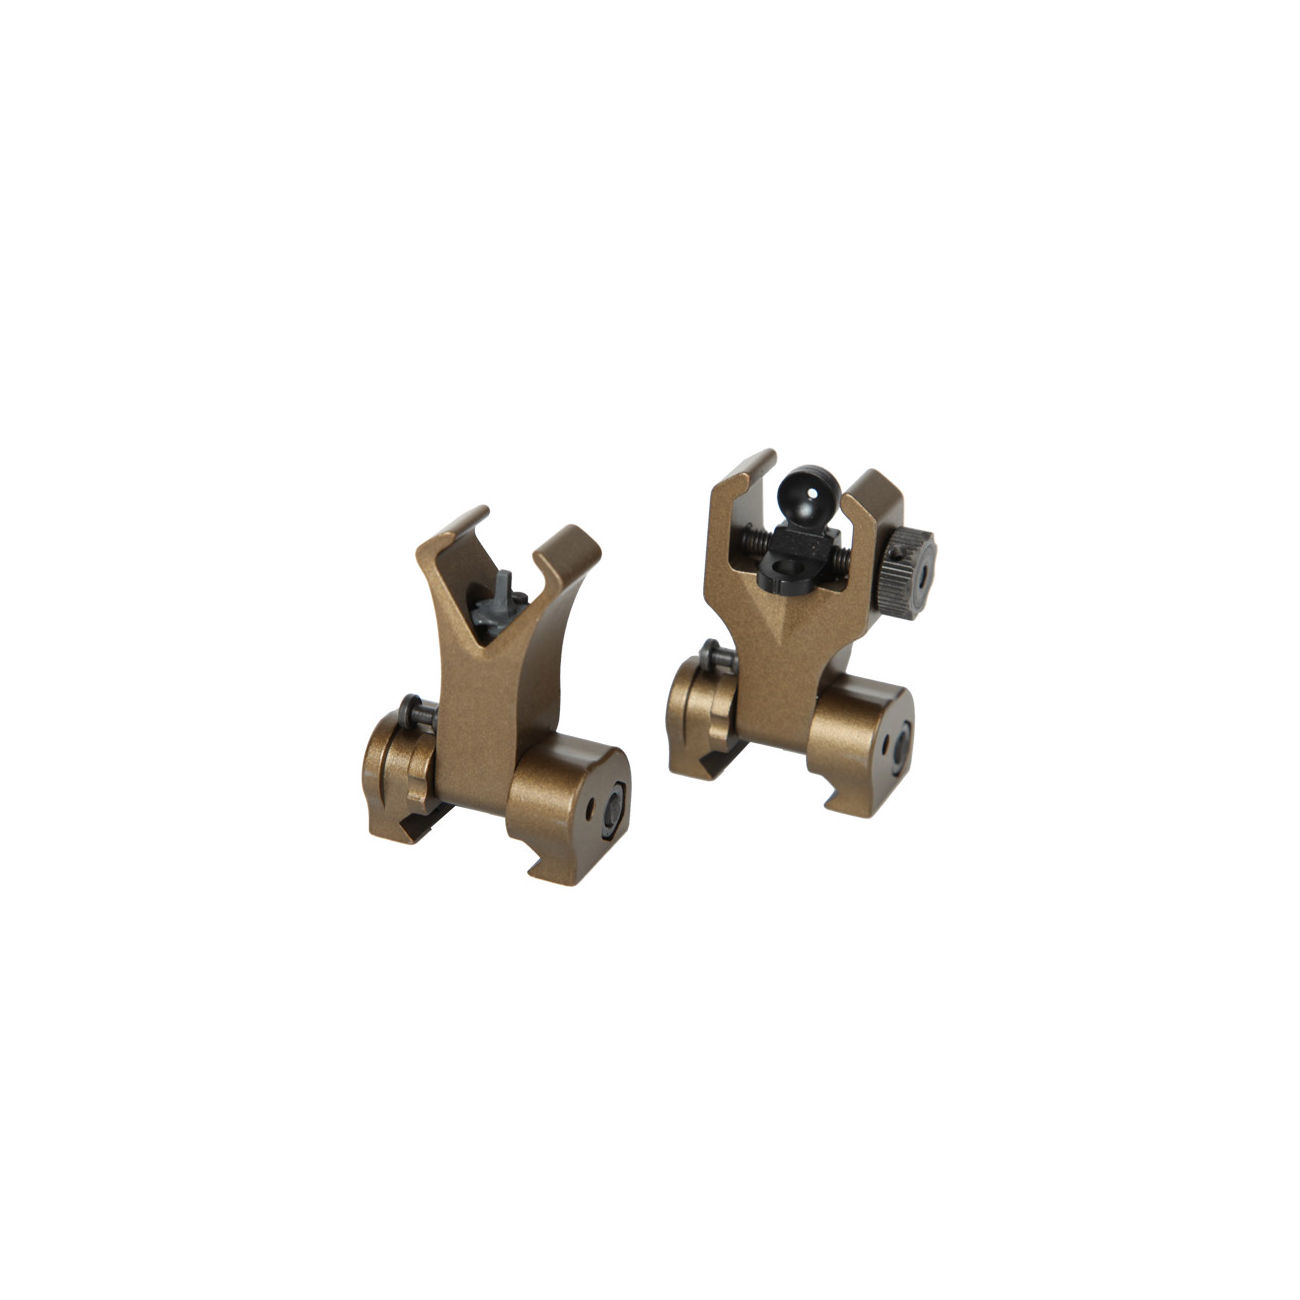 G&G Flip-Up Battle Sight Set Front / Rear für 21mm Schienen Desert Tan 2